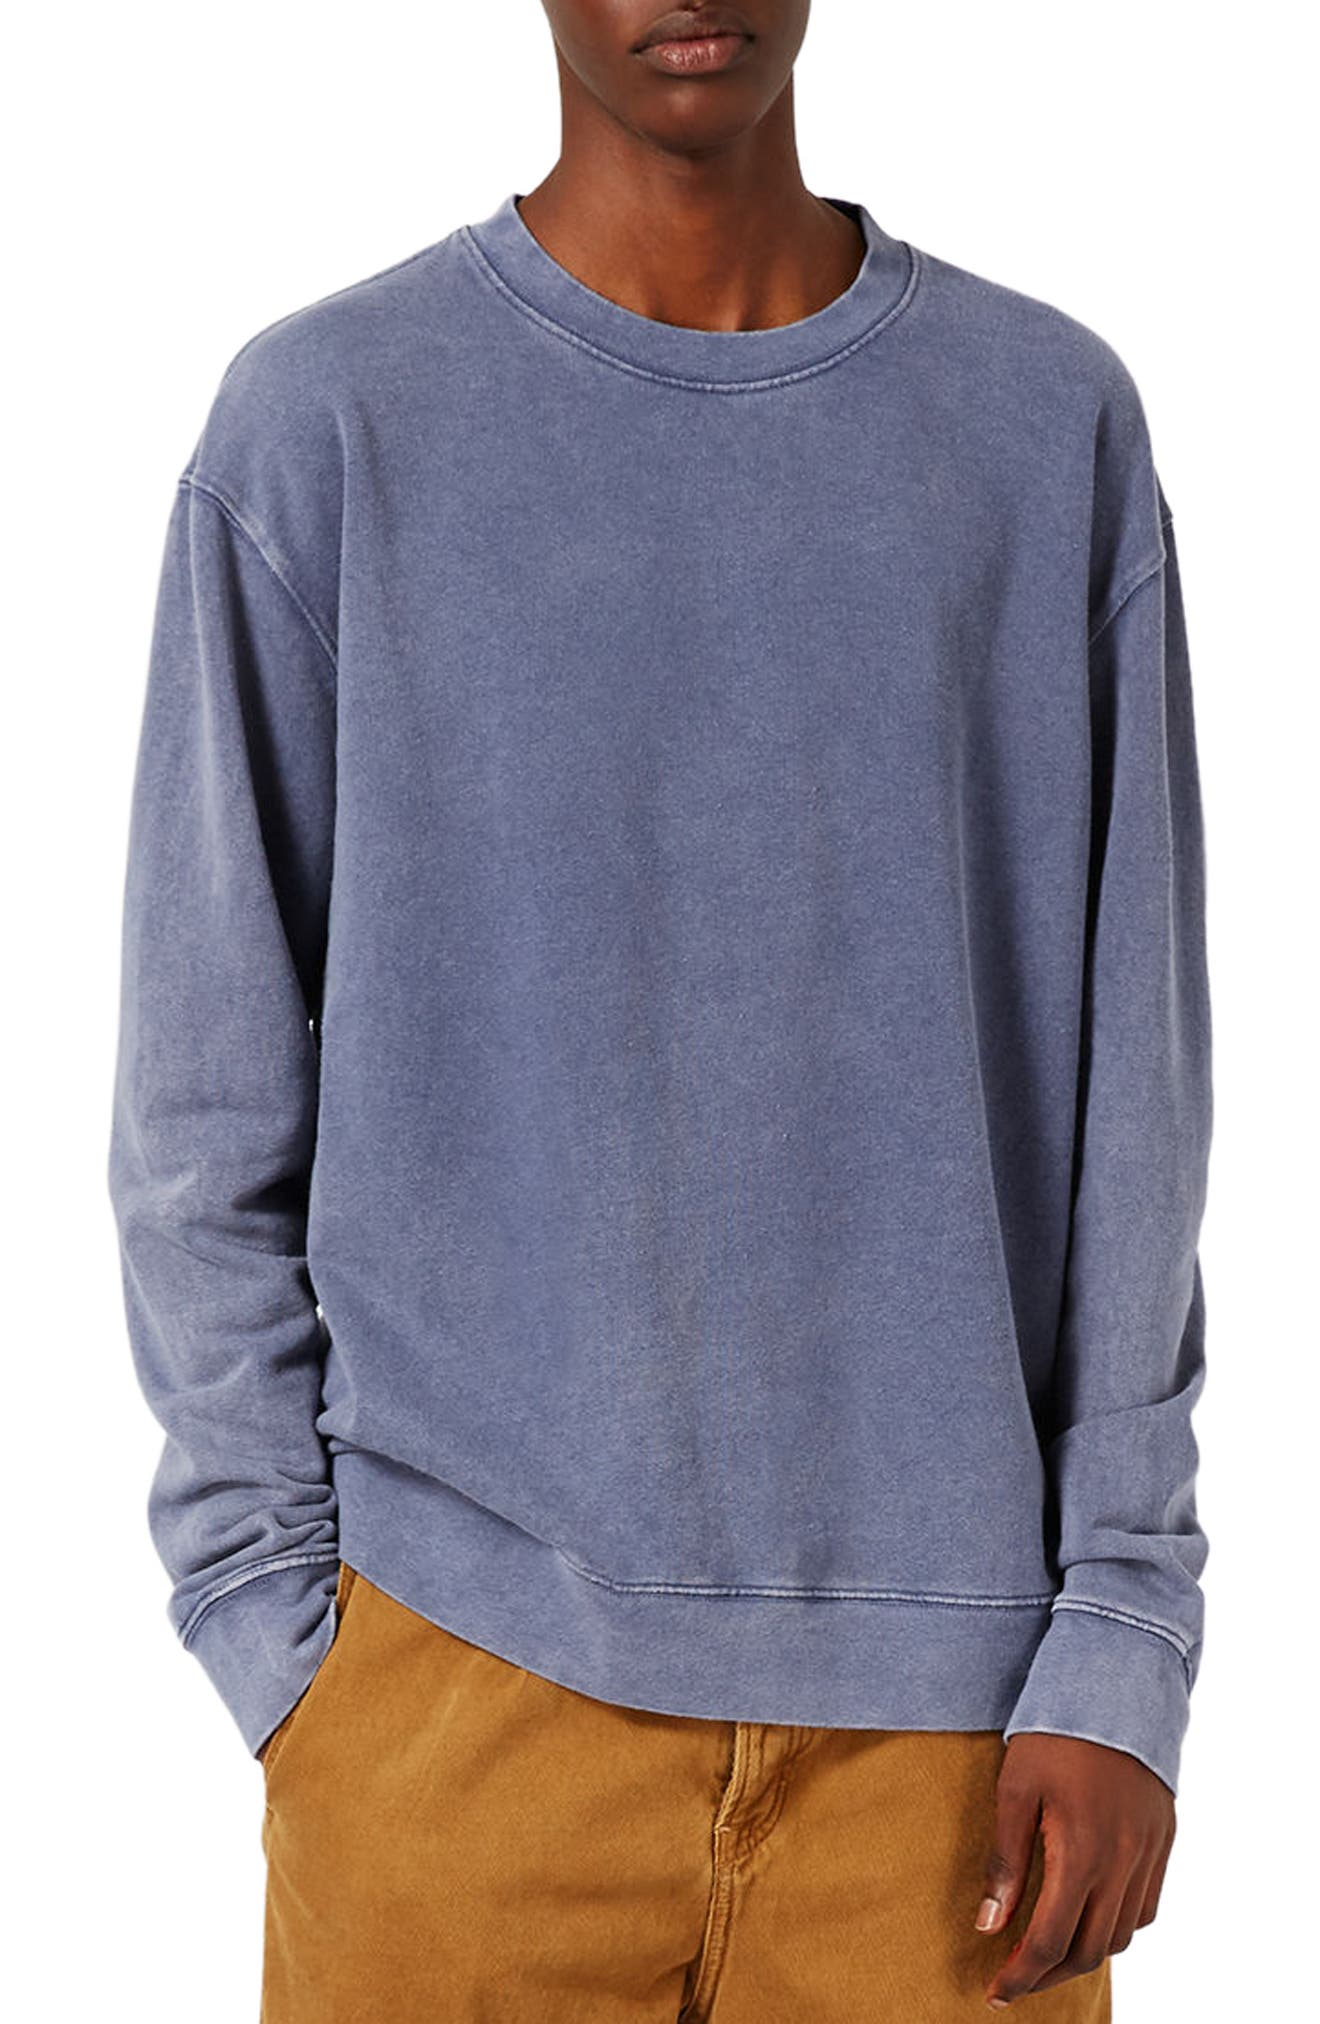 Topman Washed Sweatshirt